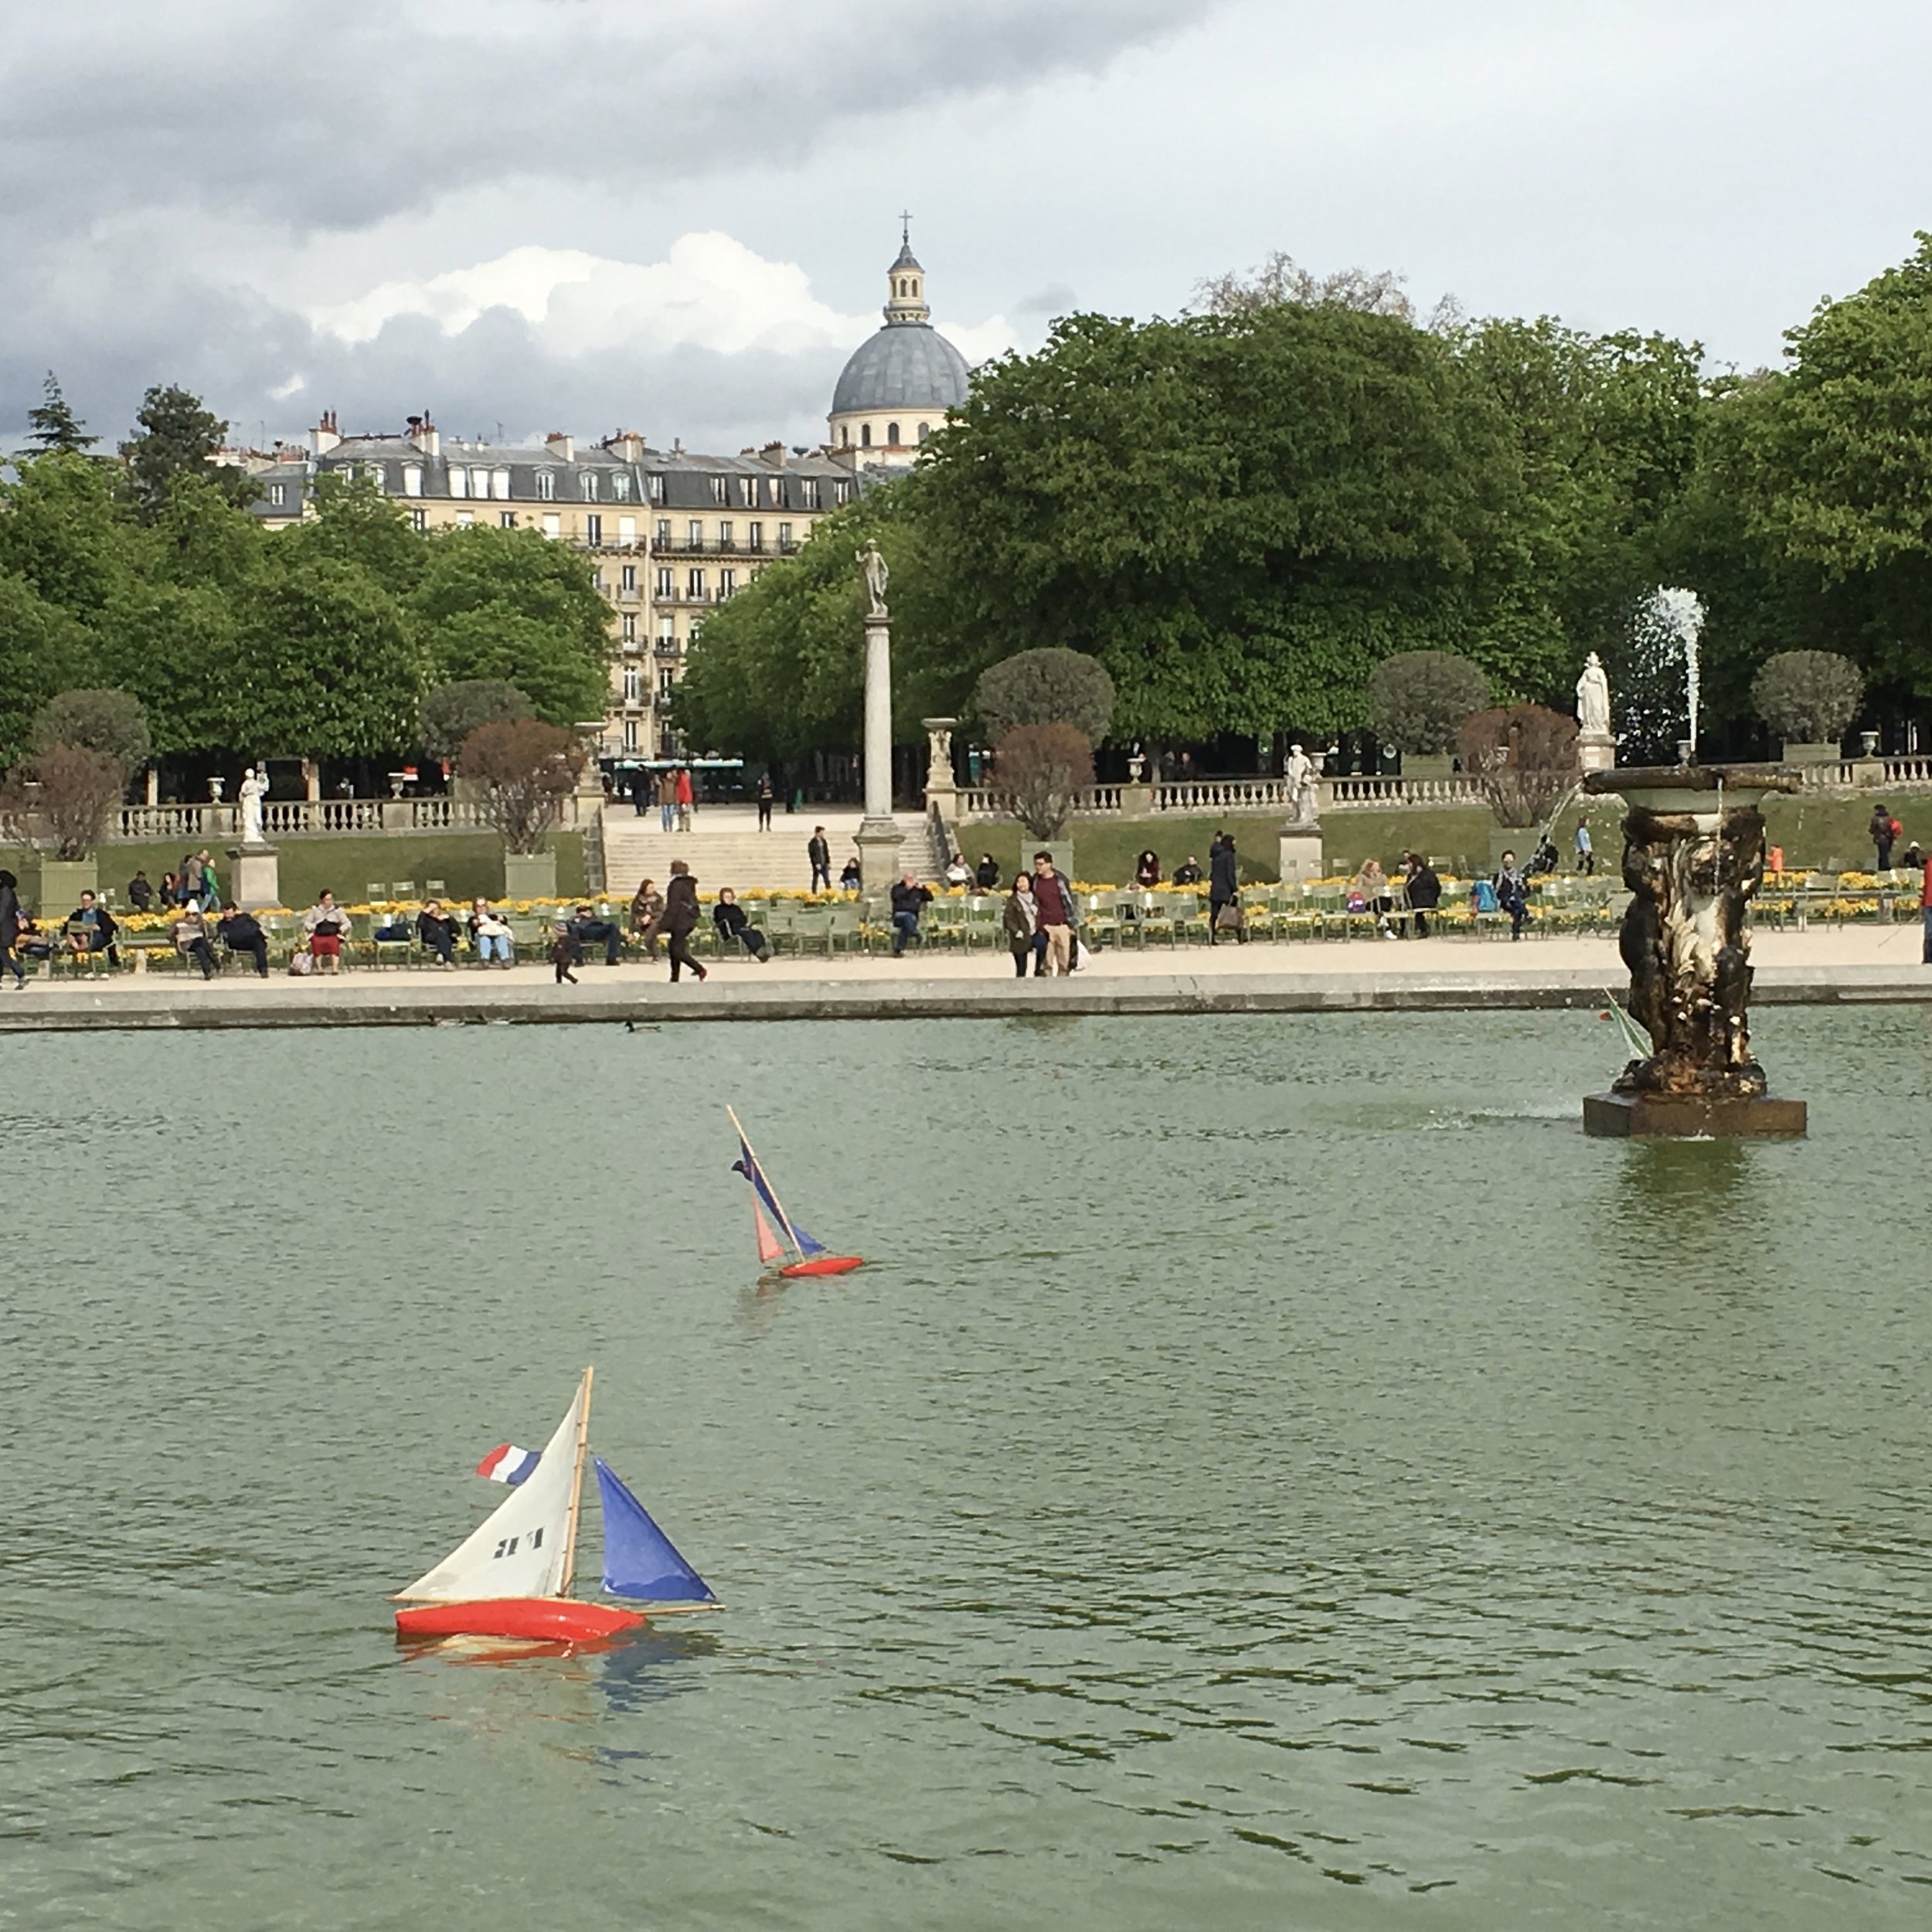 Toy Boats in the Luxembourg Gardens